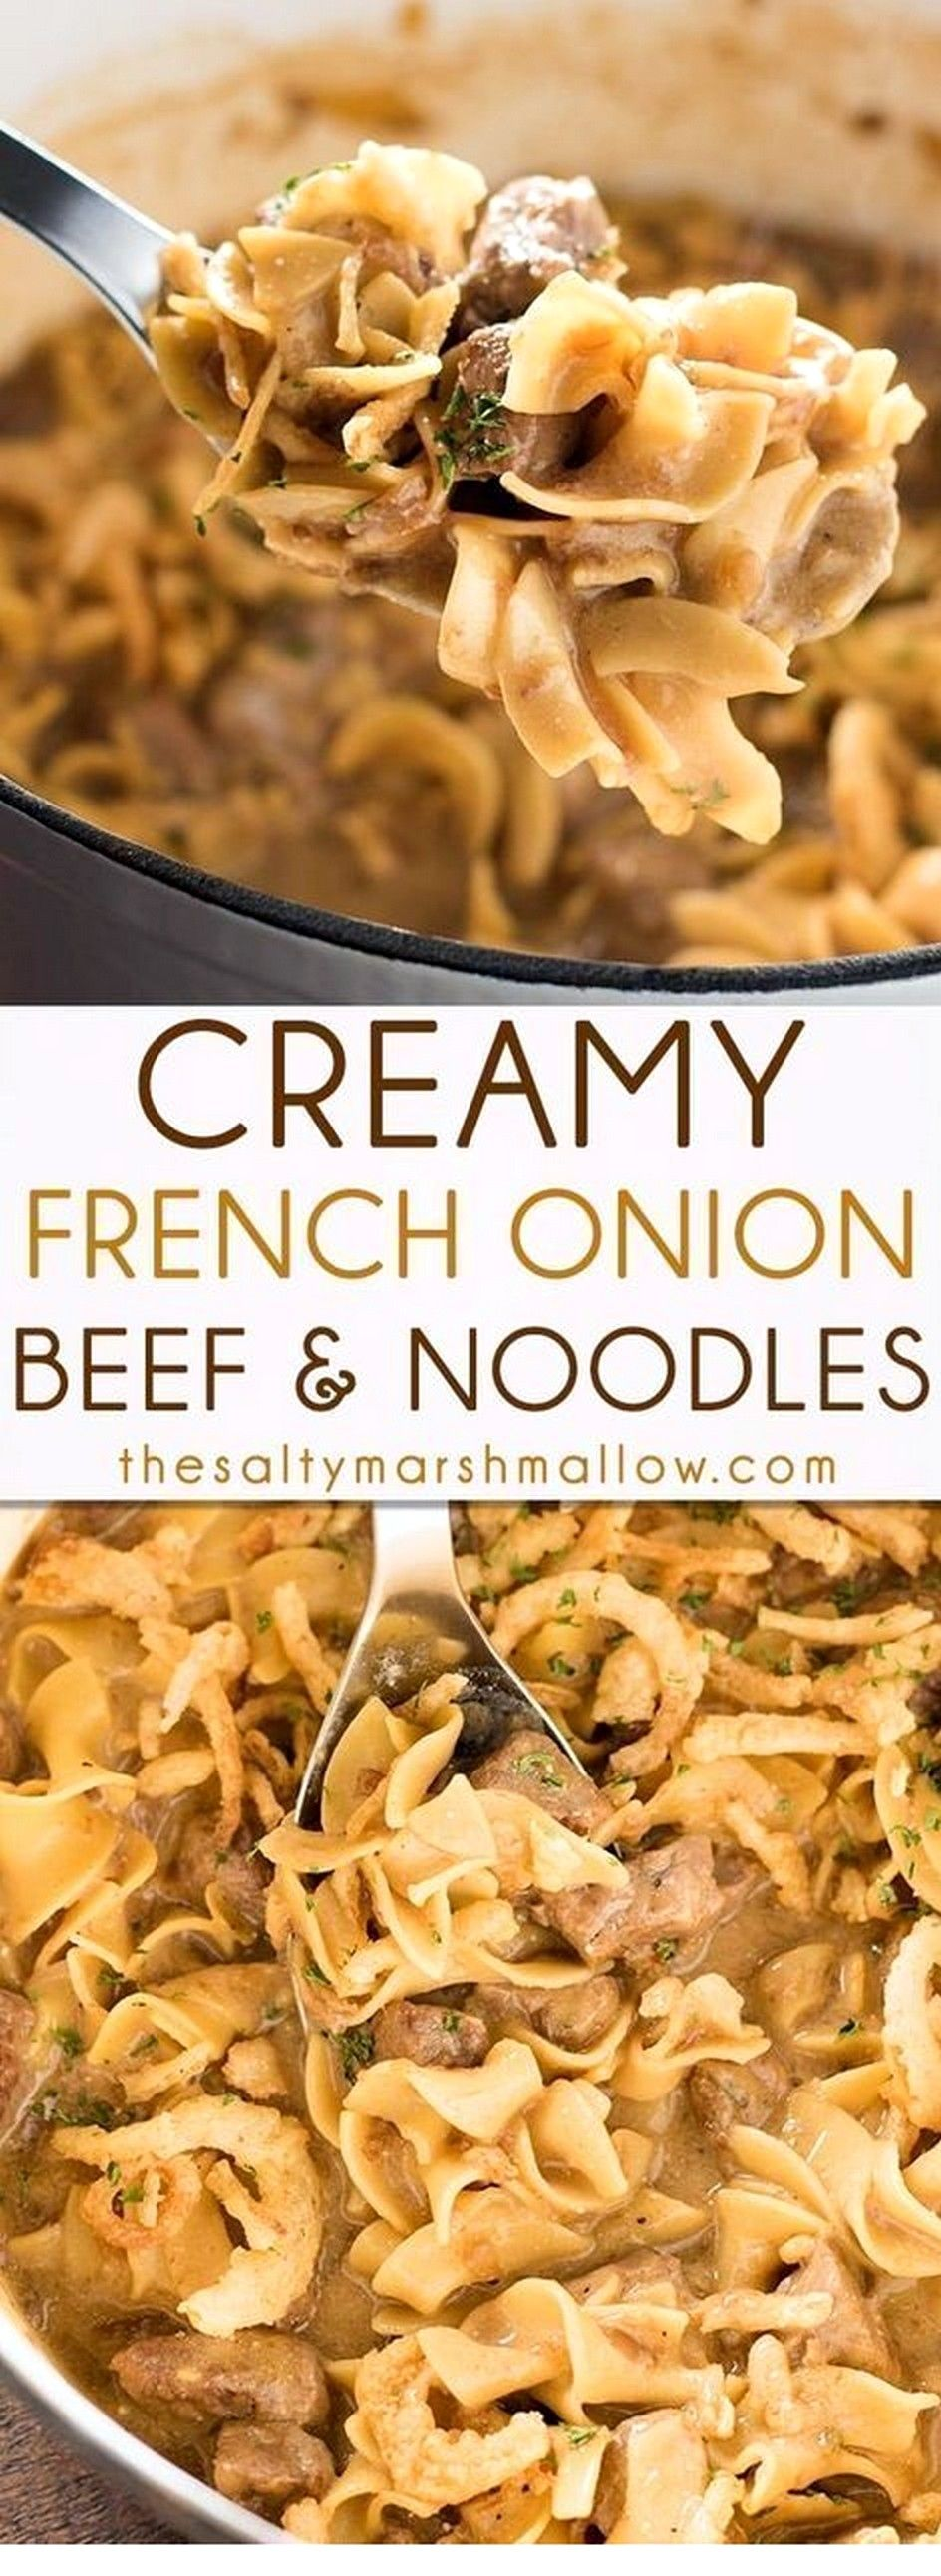 Beef Recipes | Creamy French Onion Beef and Noodles #beefandbroccoli